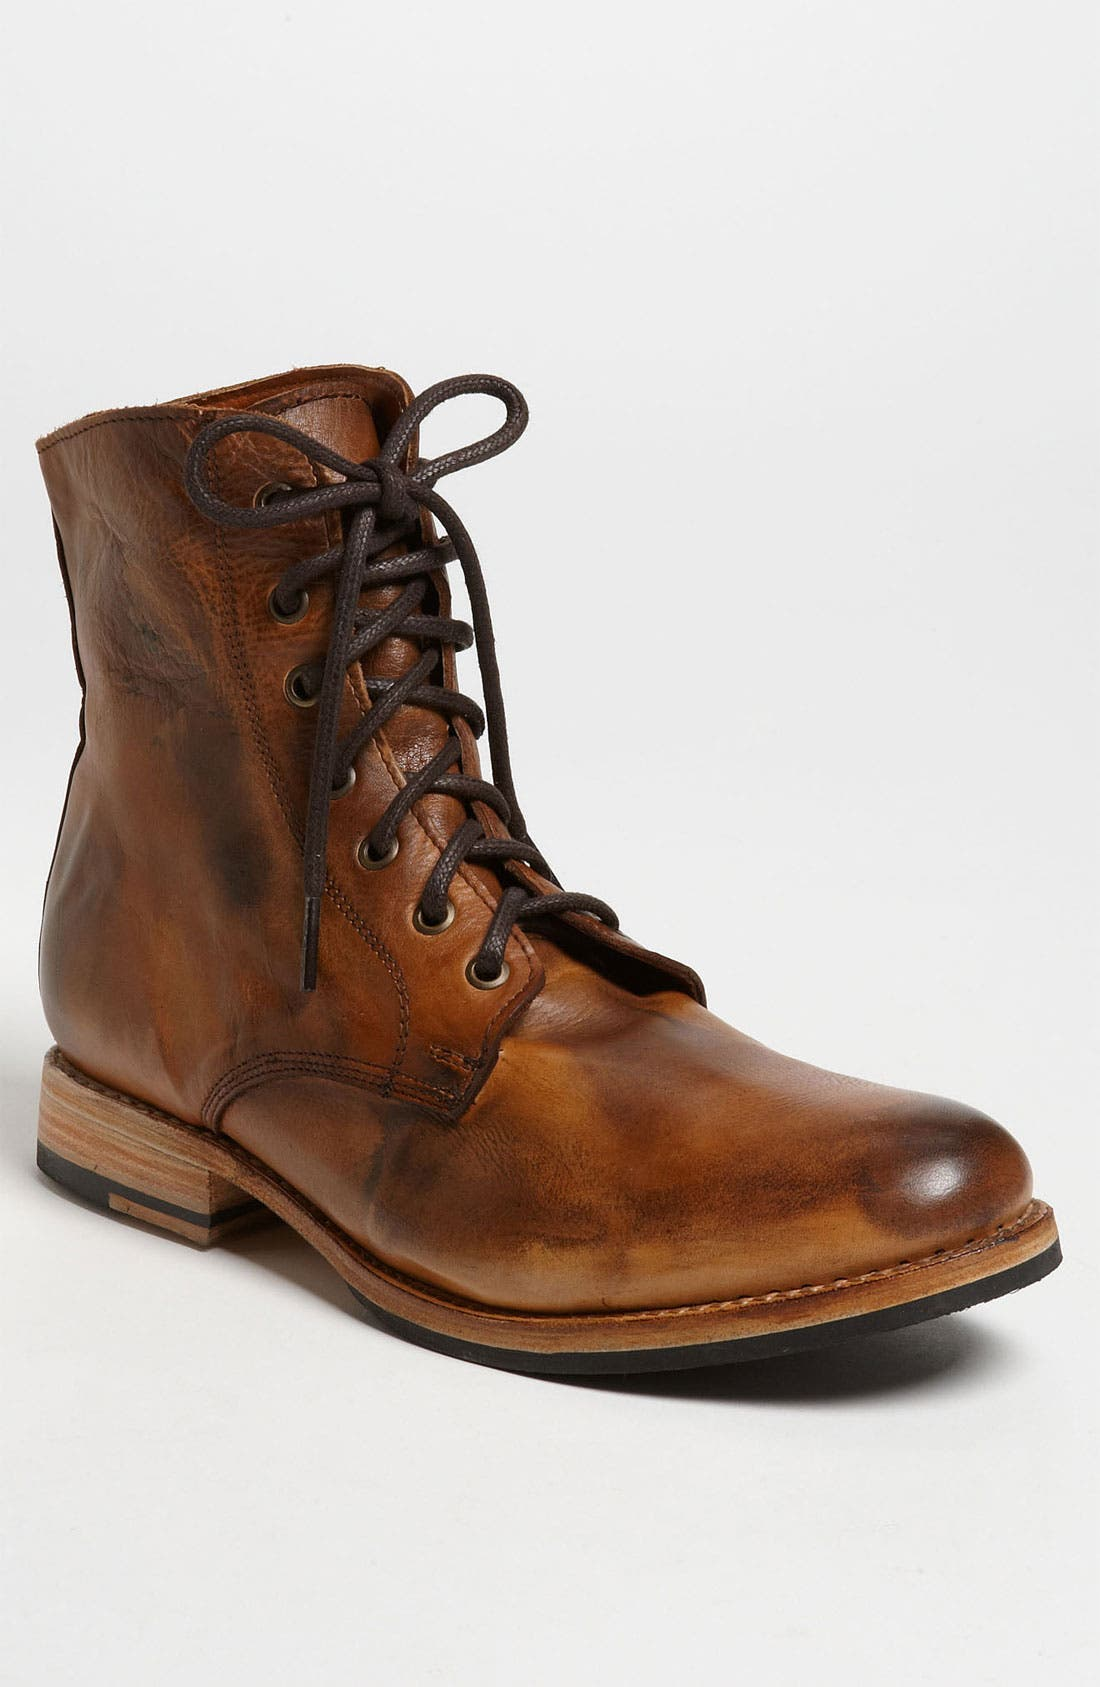 Alternate Image 1 Selected - Bed Stu 'Post' Plain Toe Boot (Online Only)